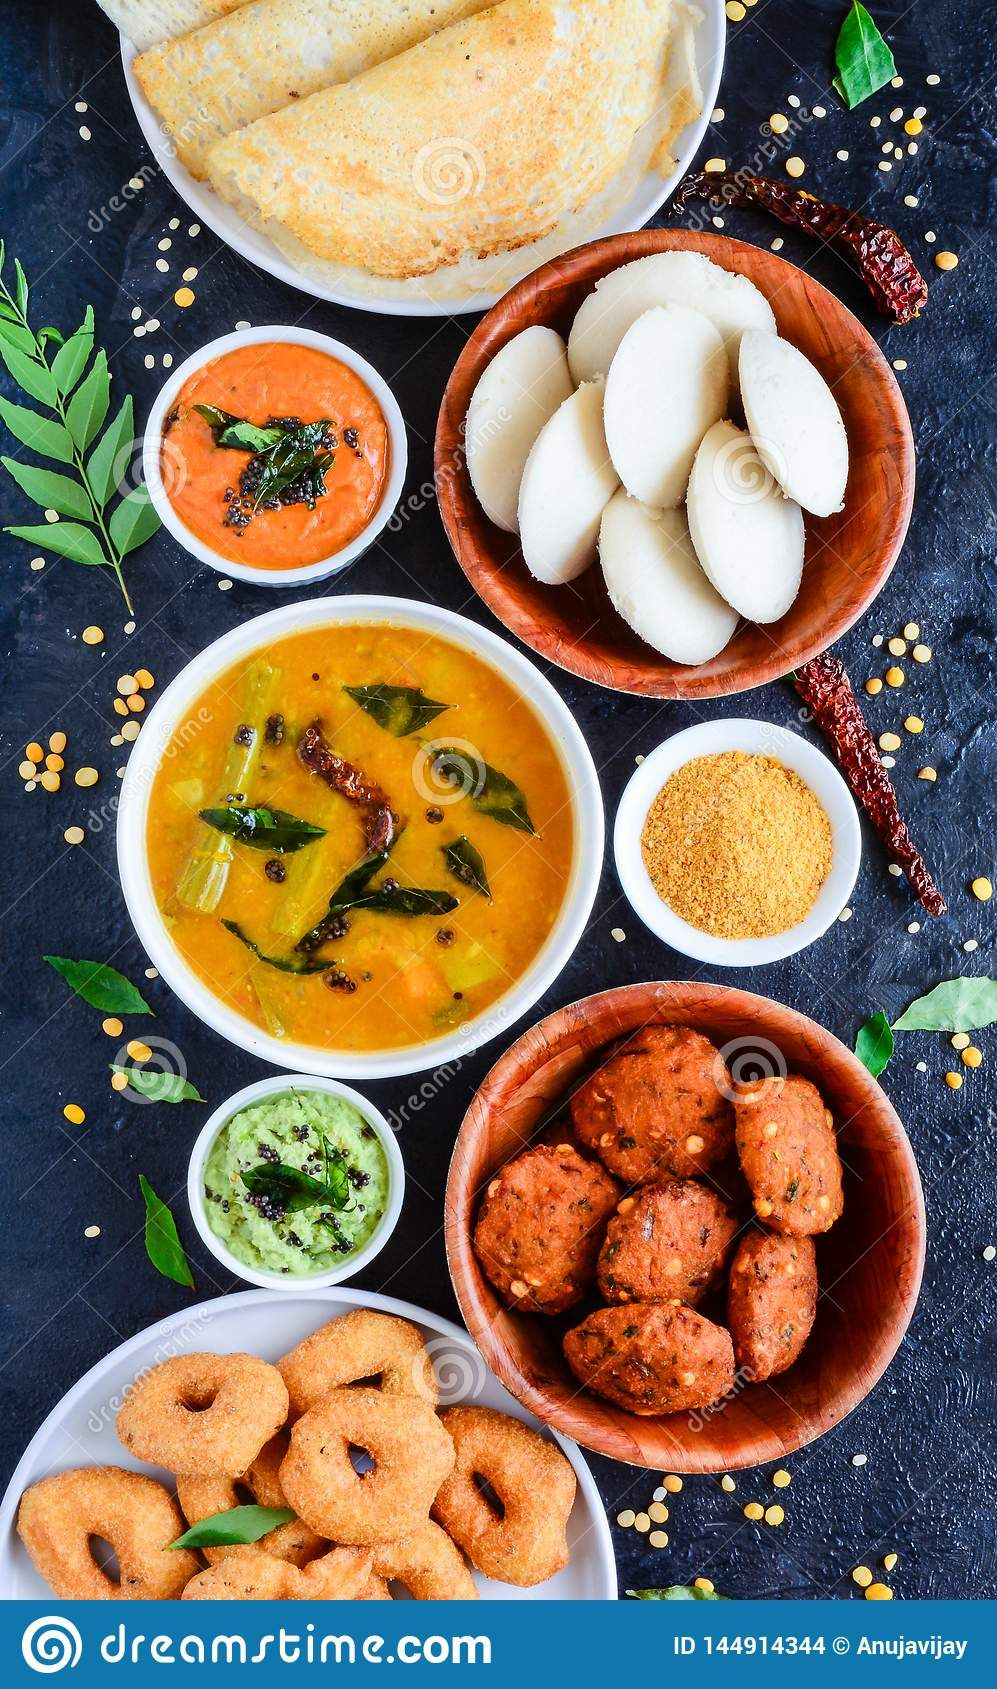 Photo About South Indian Food Platter With Idli Sambhar Vada Dosa